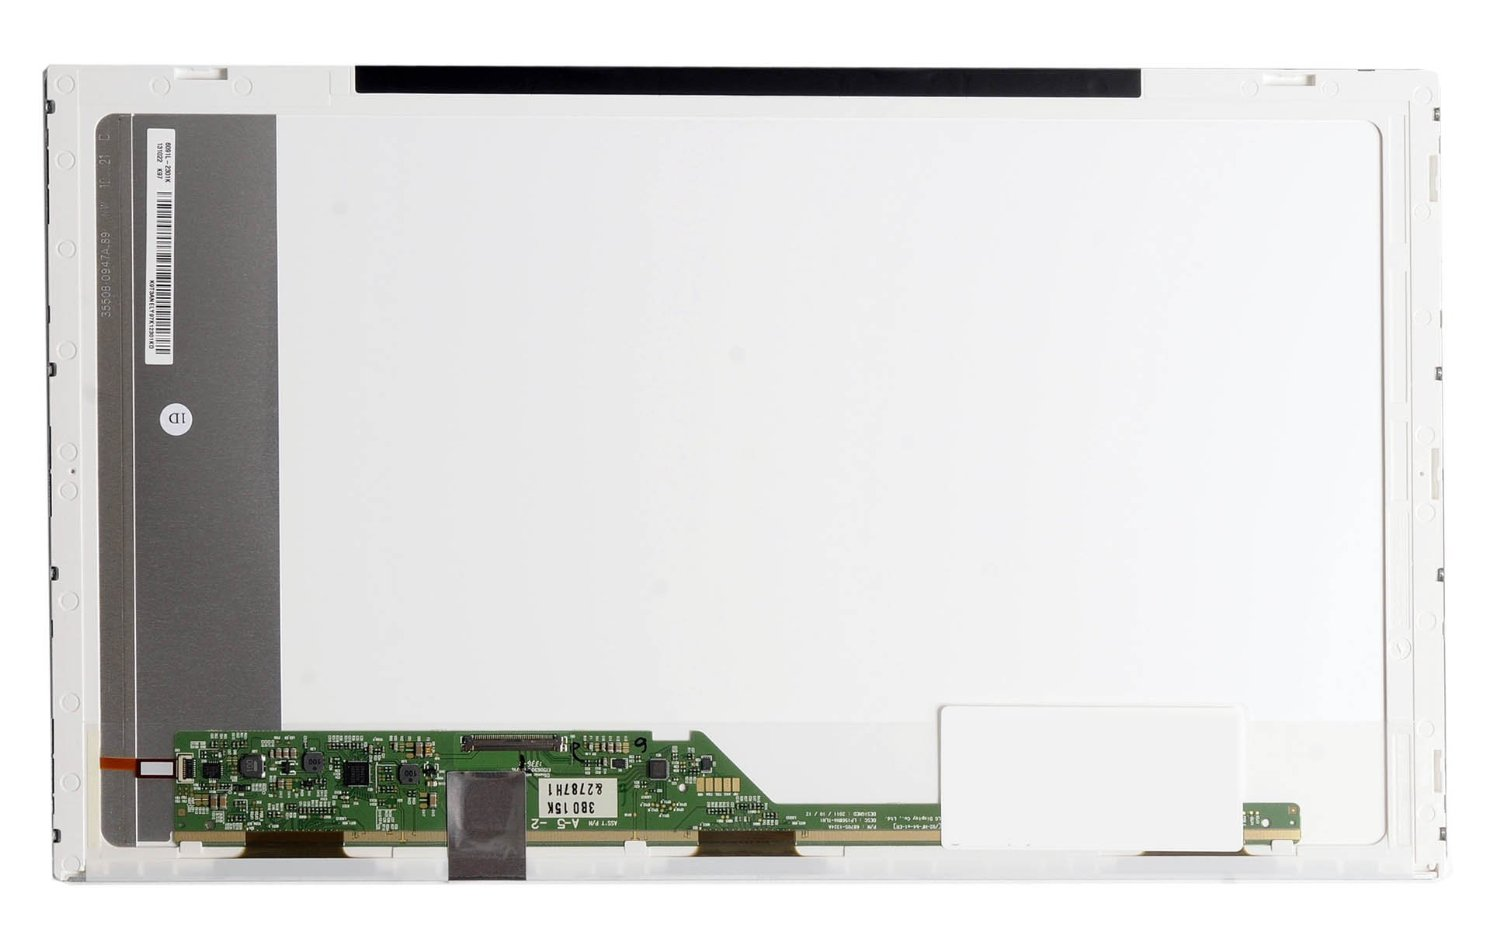 LTN156AT24-T01 For Samsung NEW 15.6 HD Laptop LED LCD Screen/Display LTN156AT24-A01, LTN156AT32 lc150x01 sl01 lc150x01 sl 01 lcd display screens